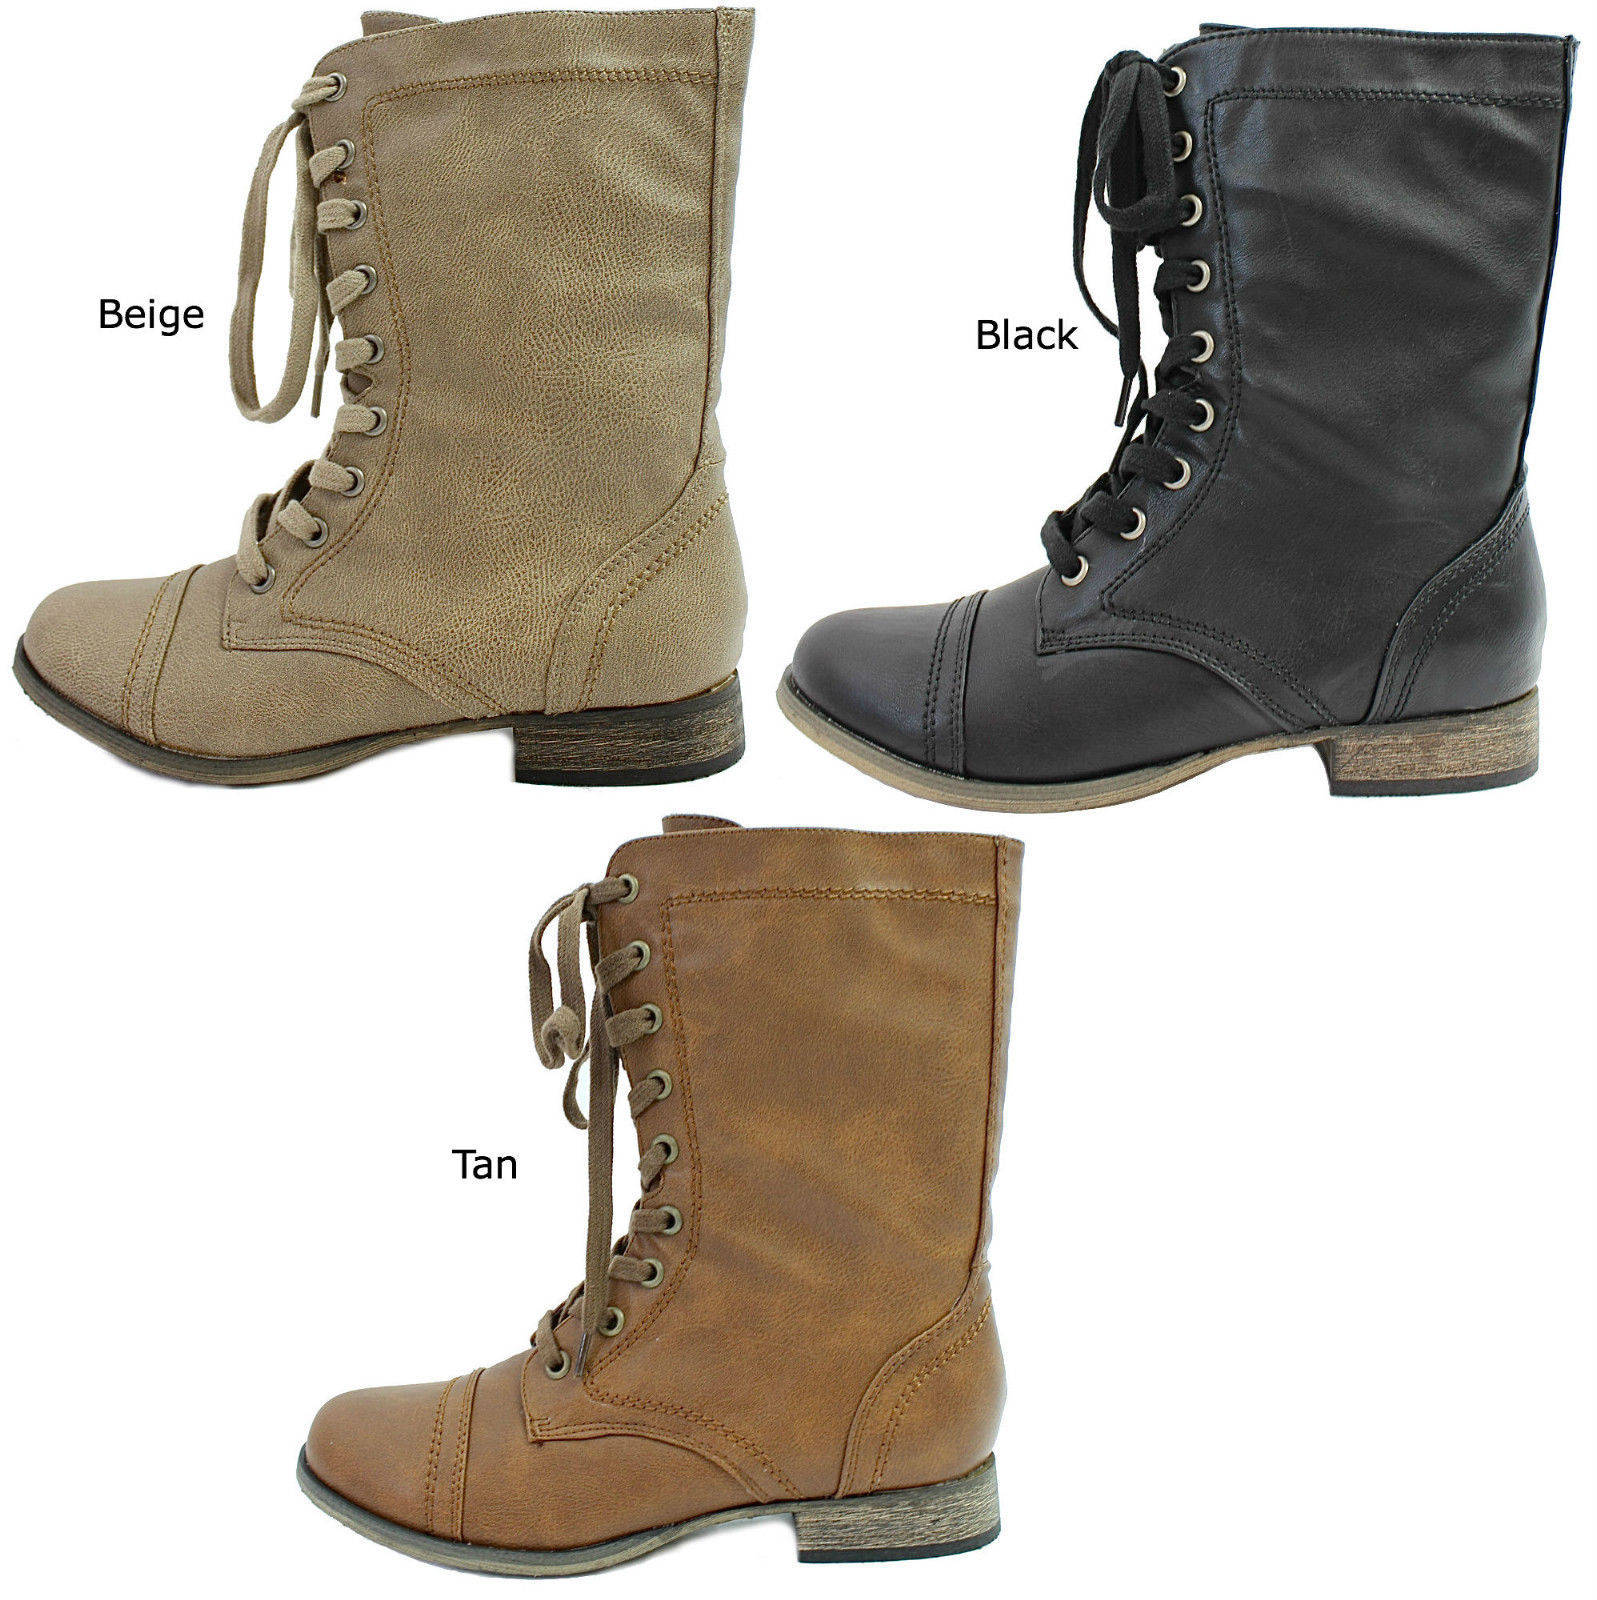 9f1a919763168 S l1600. S l1600. Previous. New Women's Breckelle's Georgia-21 mid calf Lace  Up military Boots ...